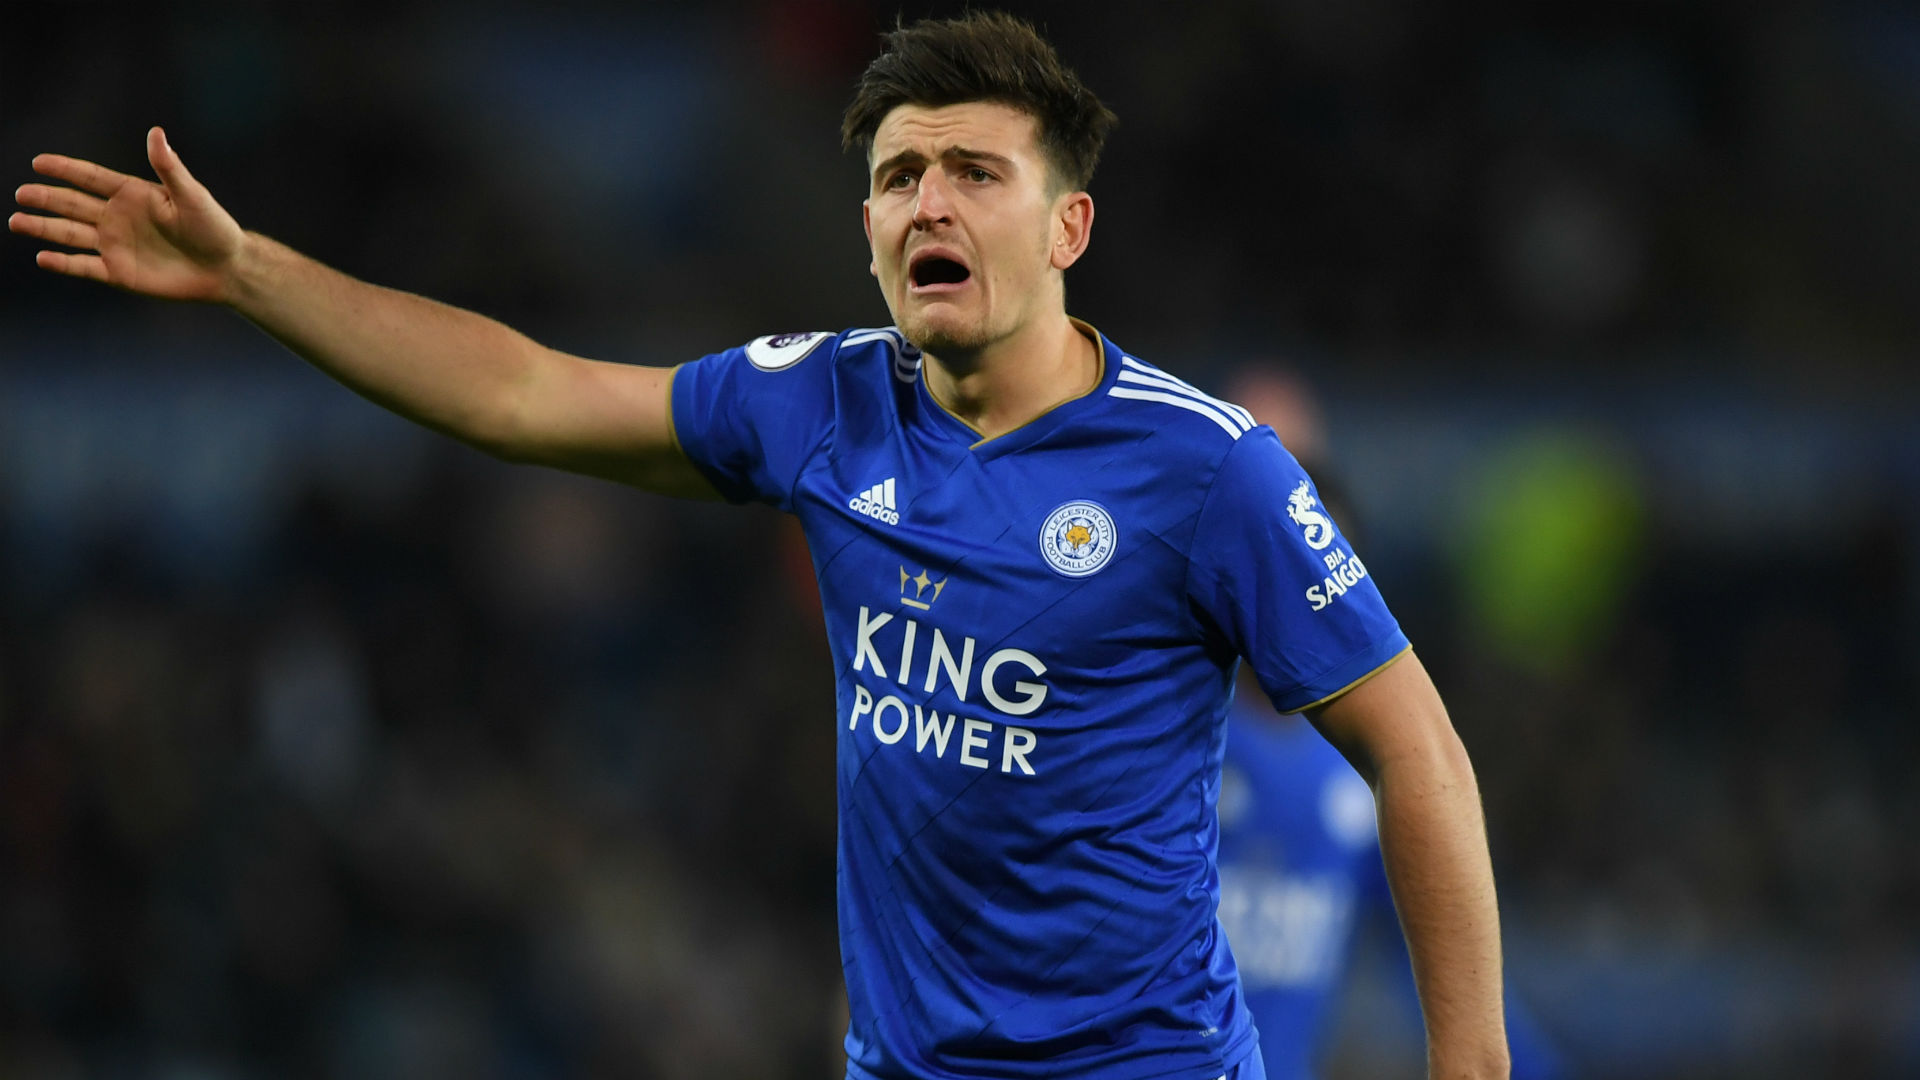 Maguire will stay at Leicester City, insists Puel